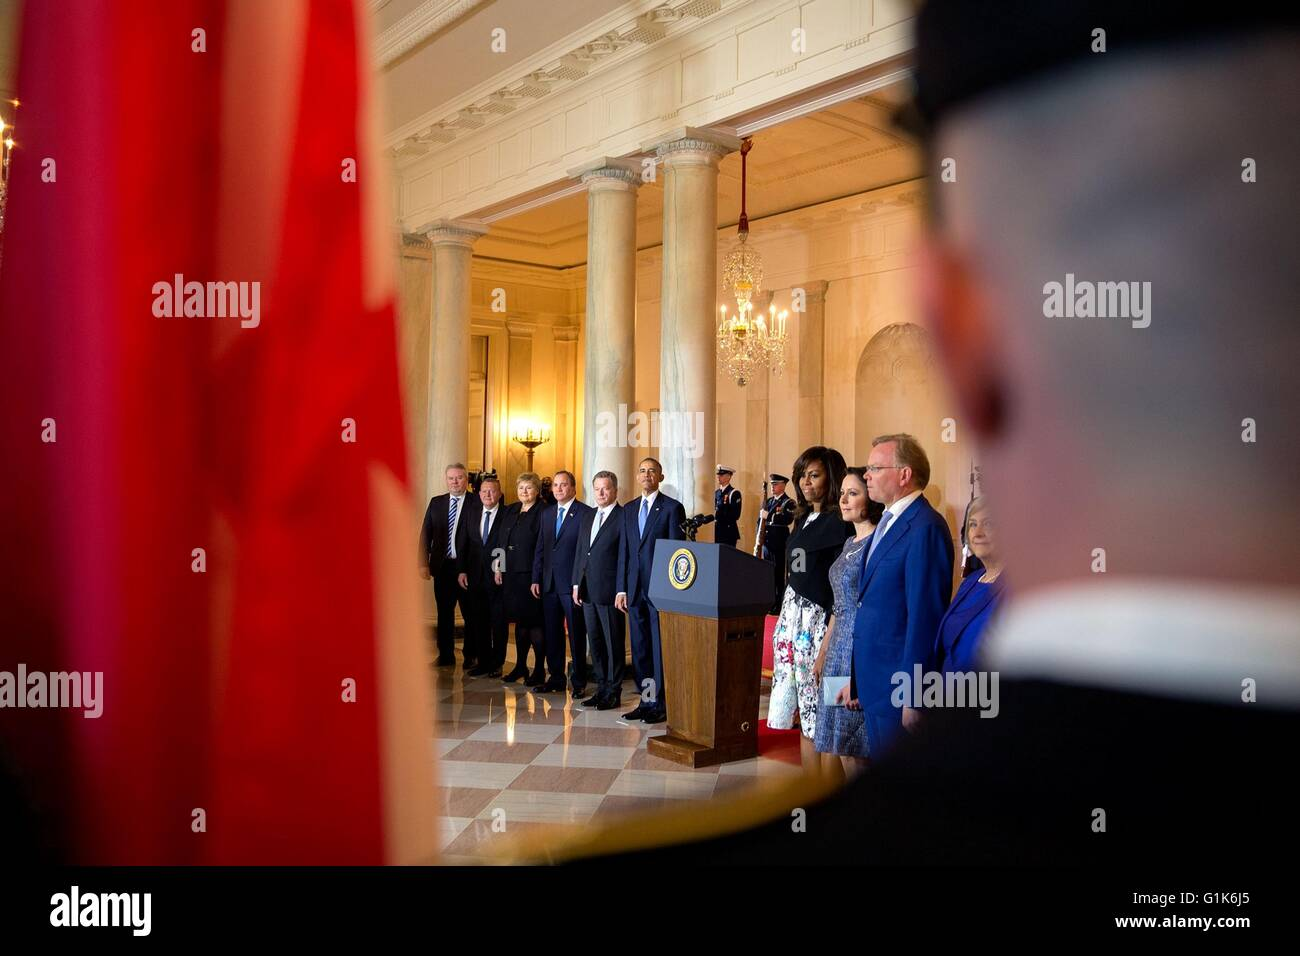 U.S President Barack Obama and the Nordic leaders view the presentation of colors in the Grand Foyer during the - Stock Image